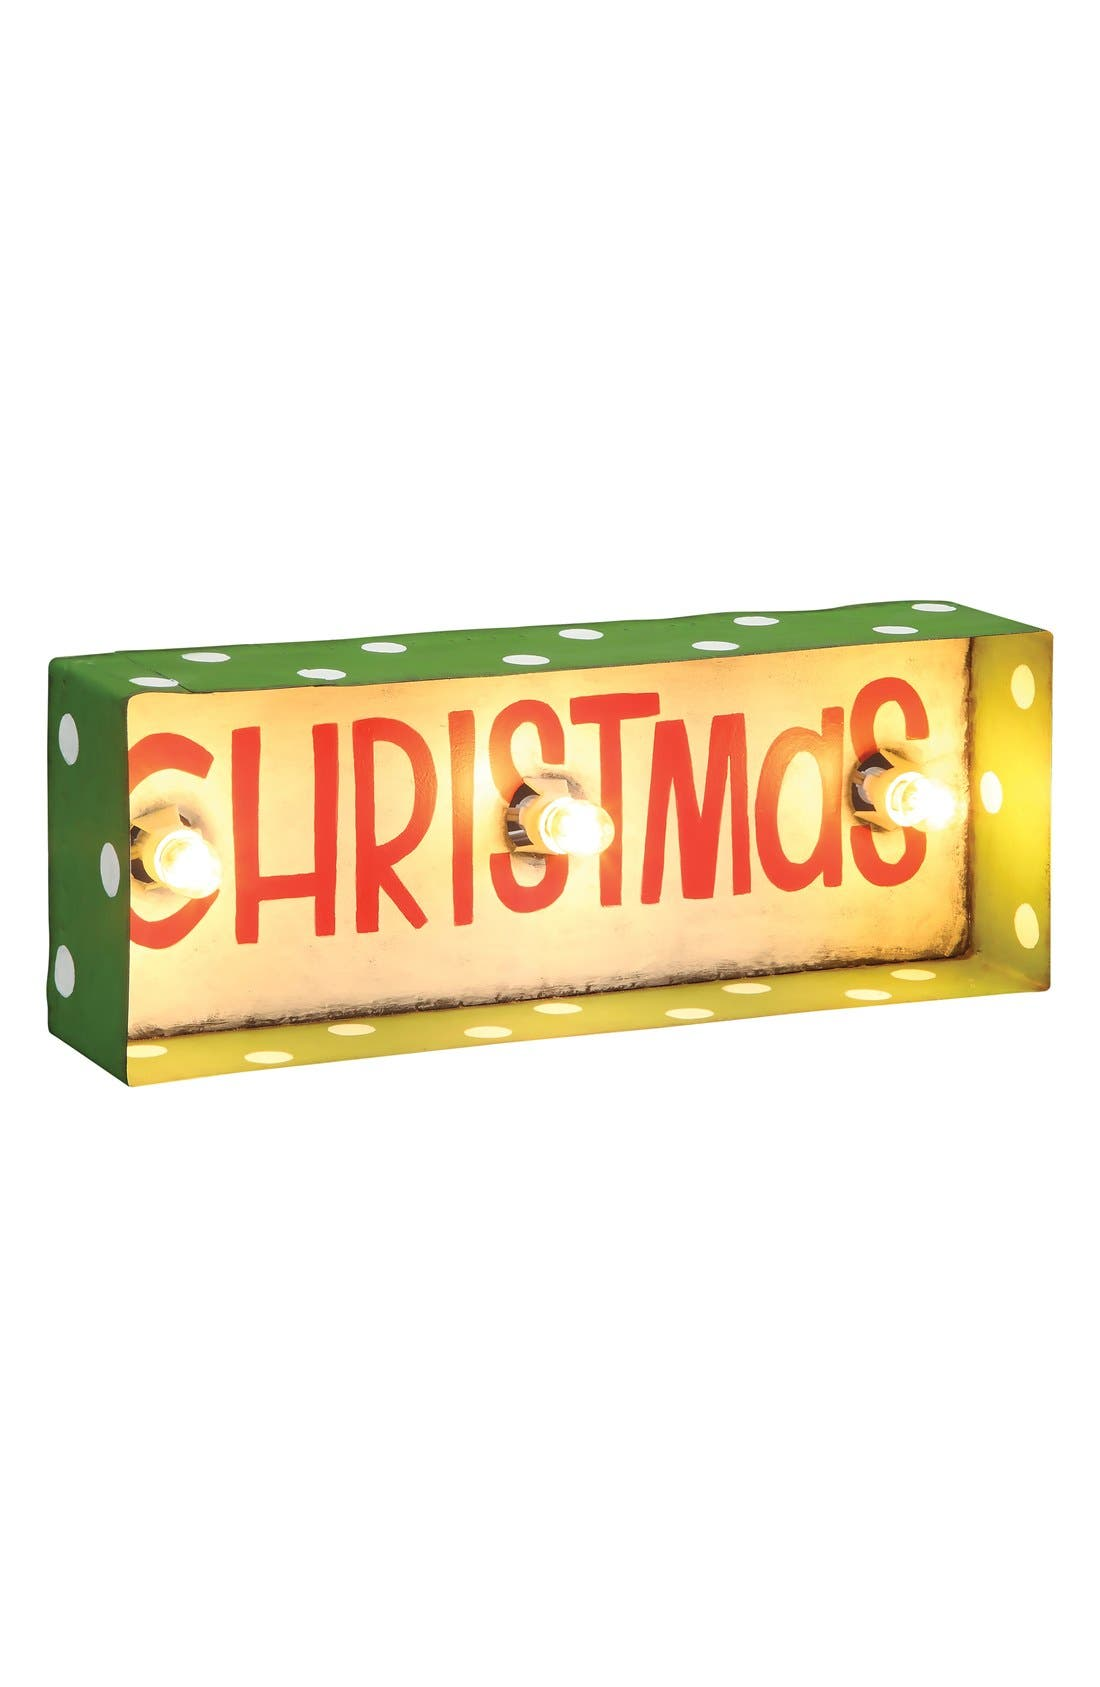 Alternate Image 1 Selected - Roman 'Christmas' Lighted Box Sign